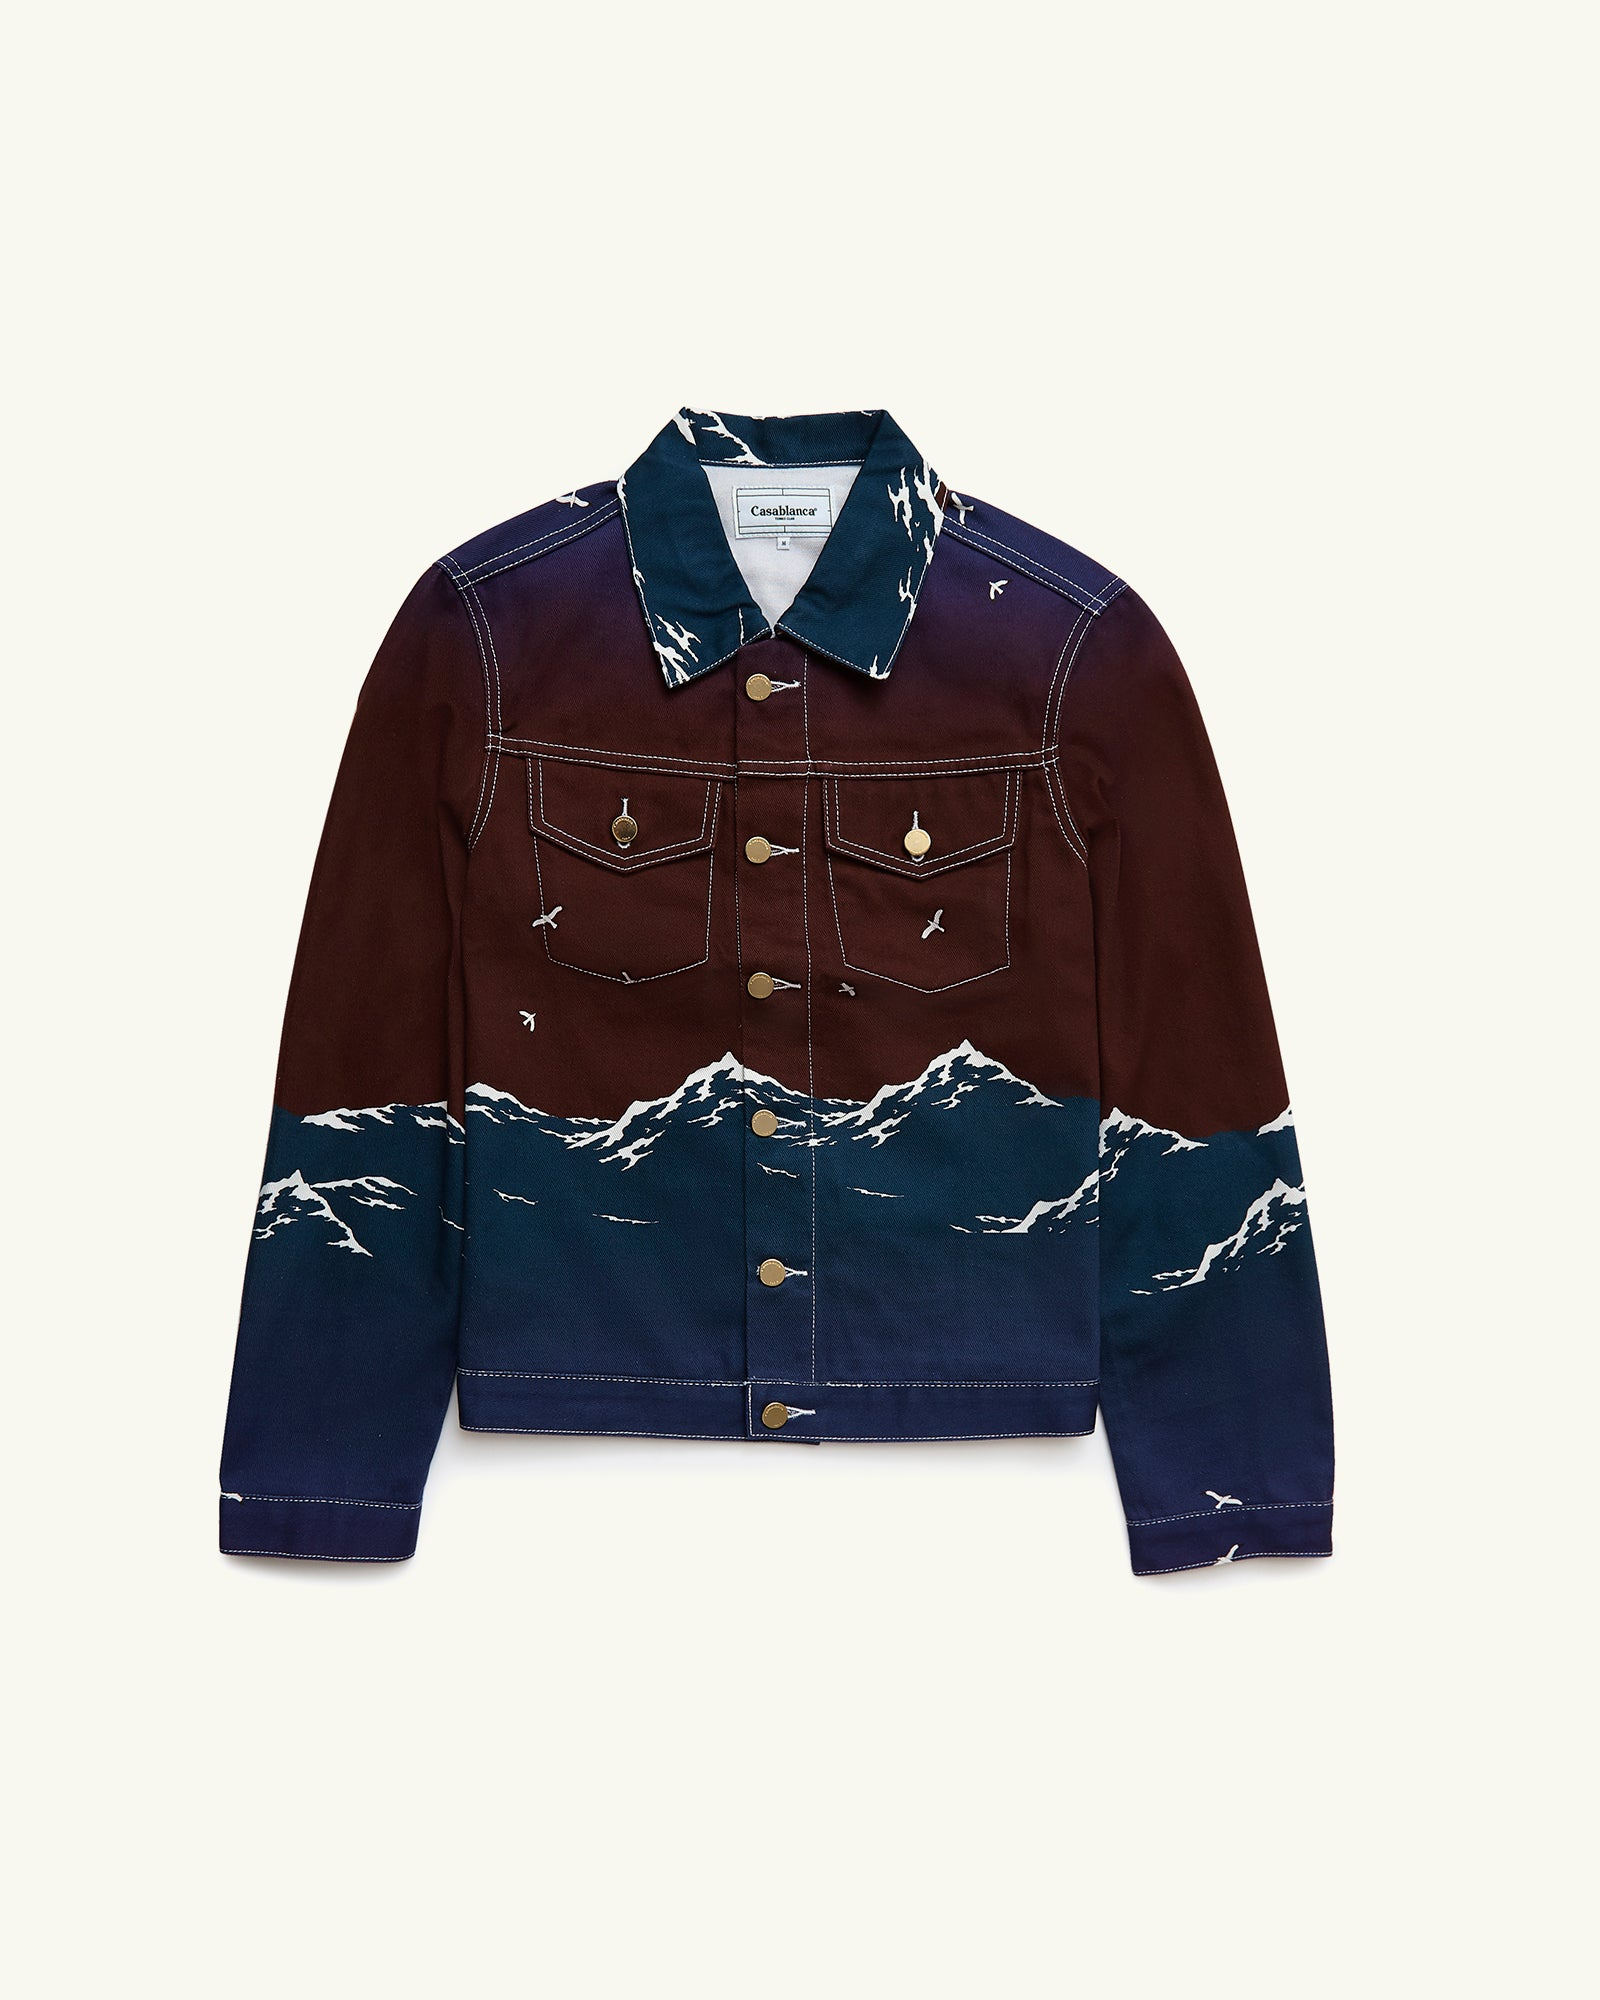 PRINTED DENIM JACKET LE PORT DE CASABLANCA MAROON